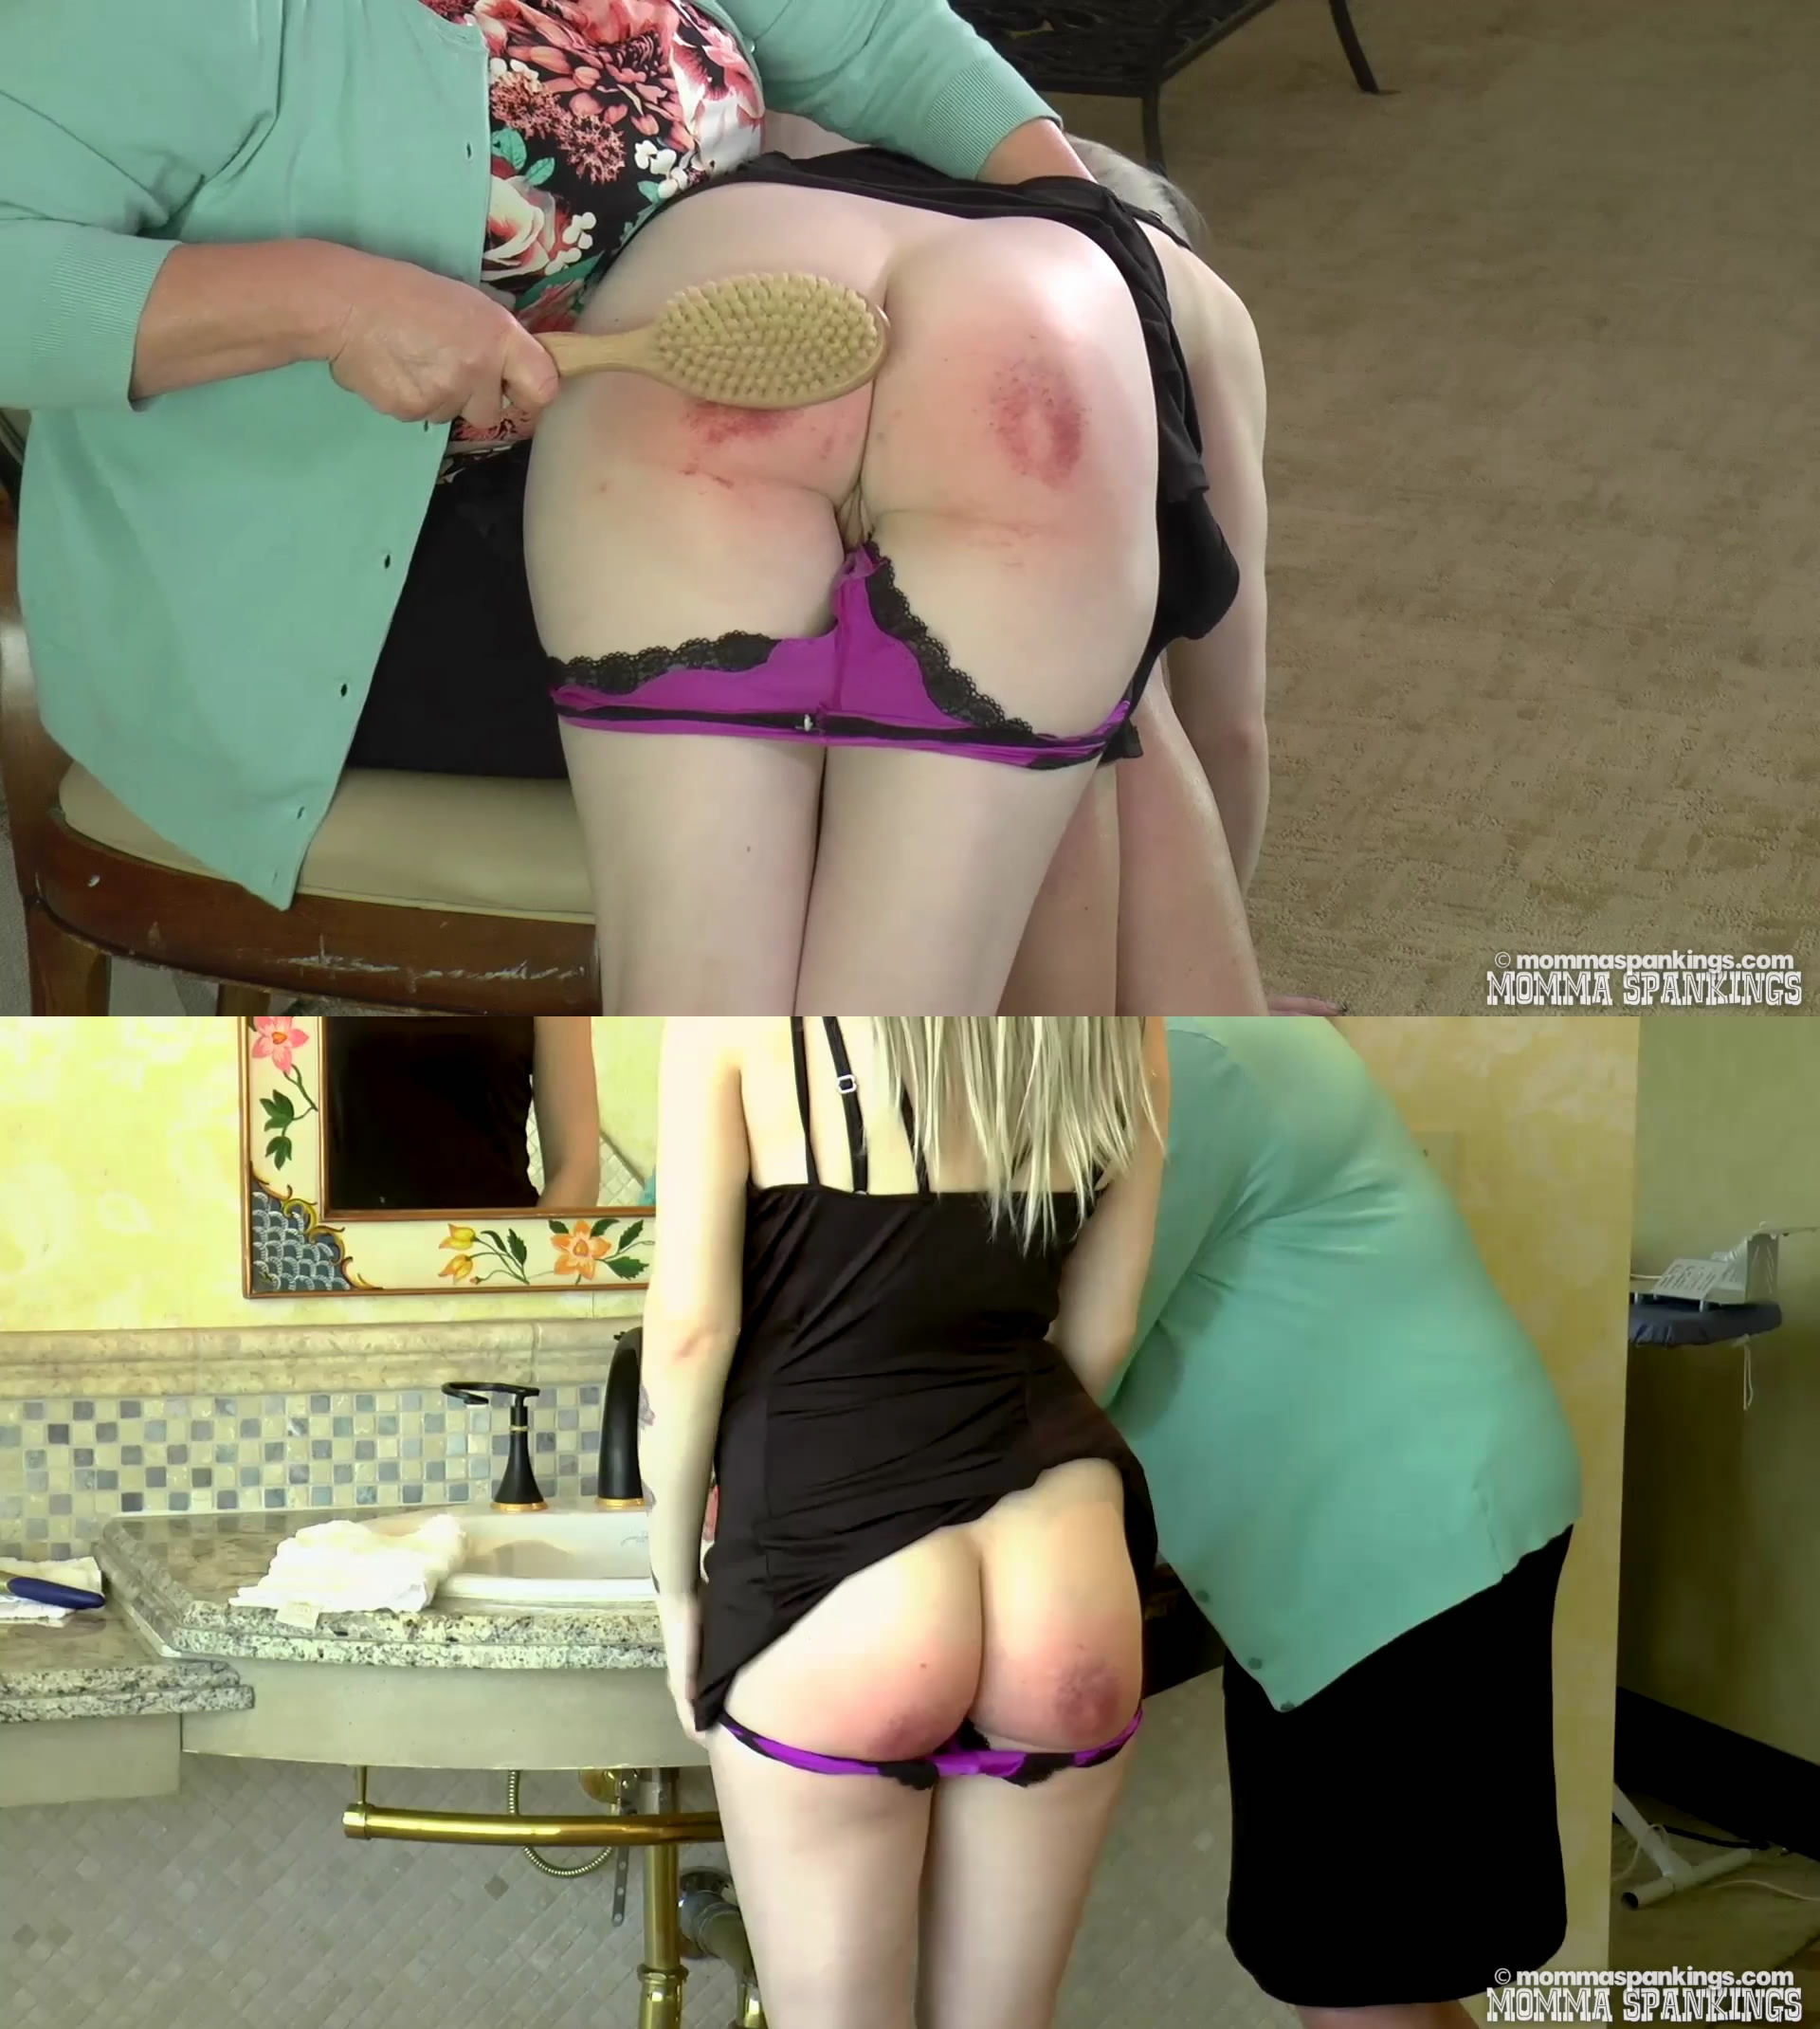 Momma Spankings – MP4/Full HD – Miss Bernadette, Sarah Gregory – Daughter Punishment